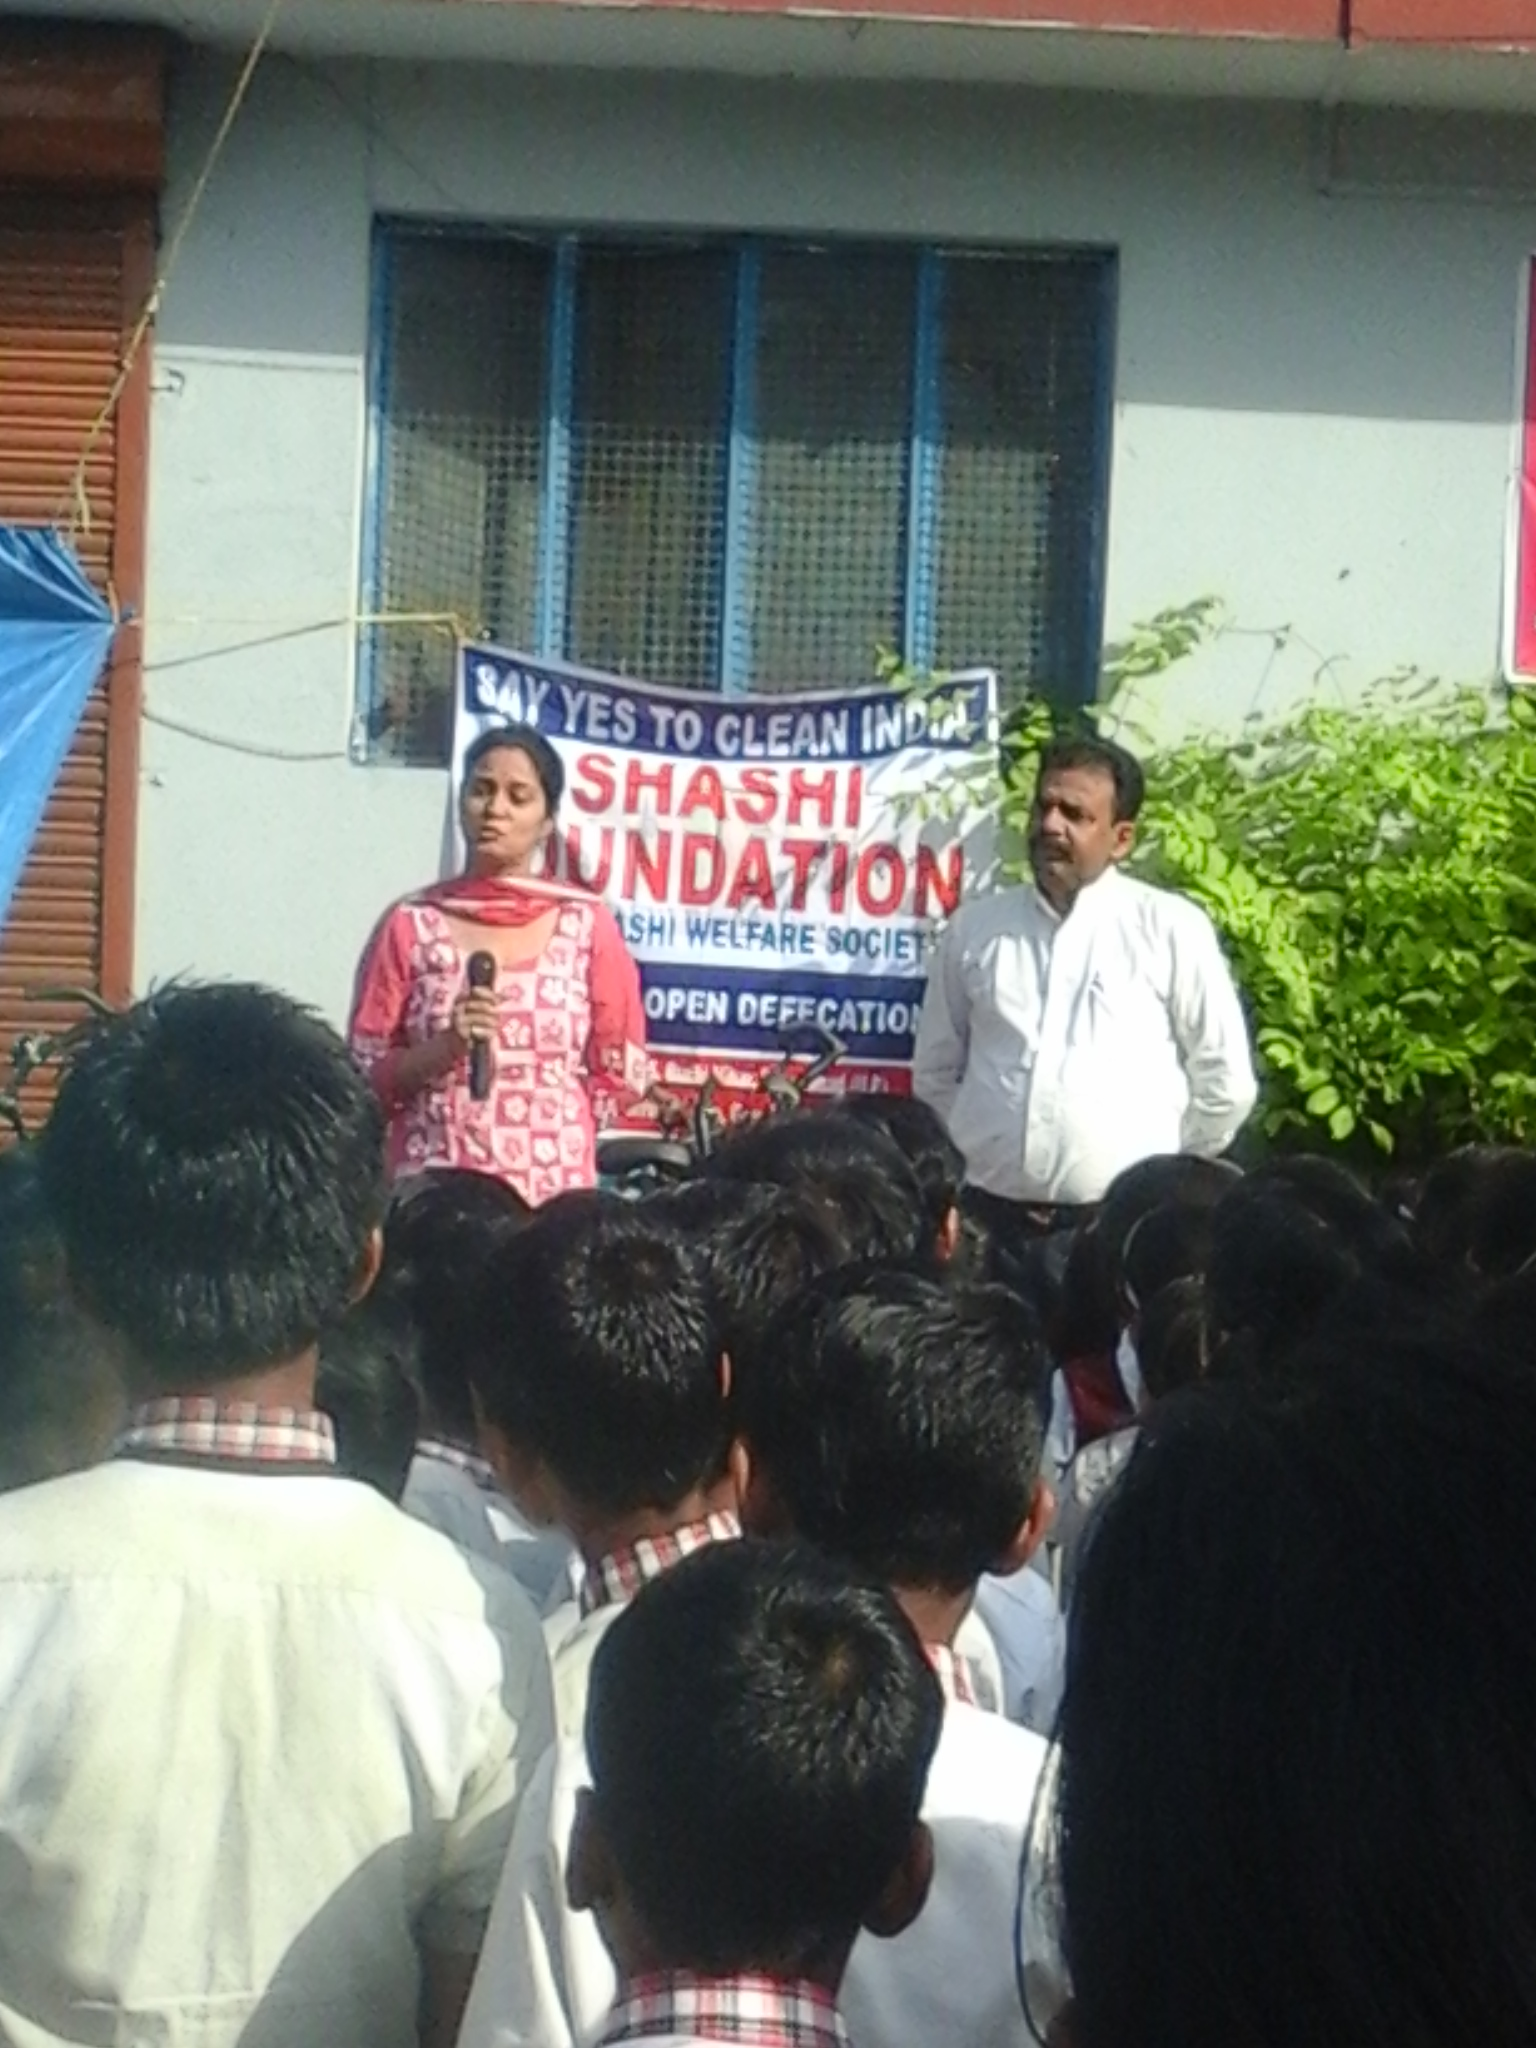 Somyata, Mayank & dilip organised an awareness program on sanitaion and hygiene in MORADABAD(u.p.) on 23 april 2015